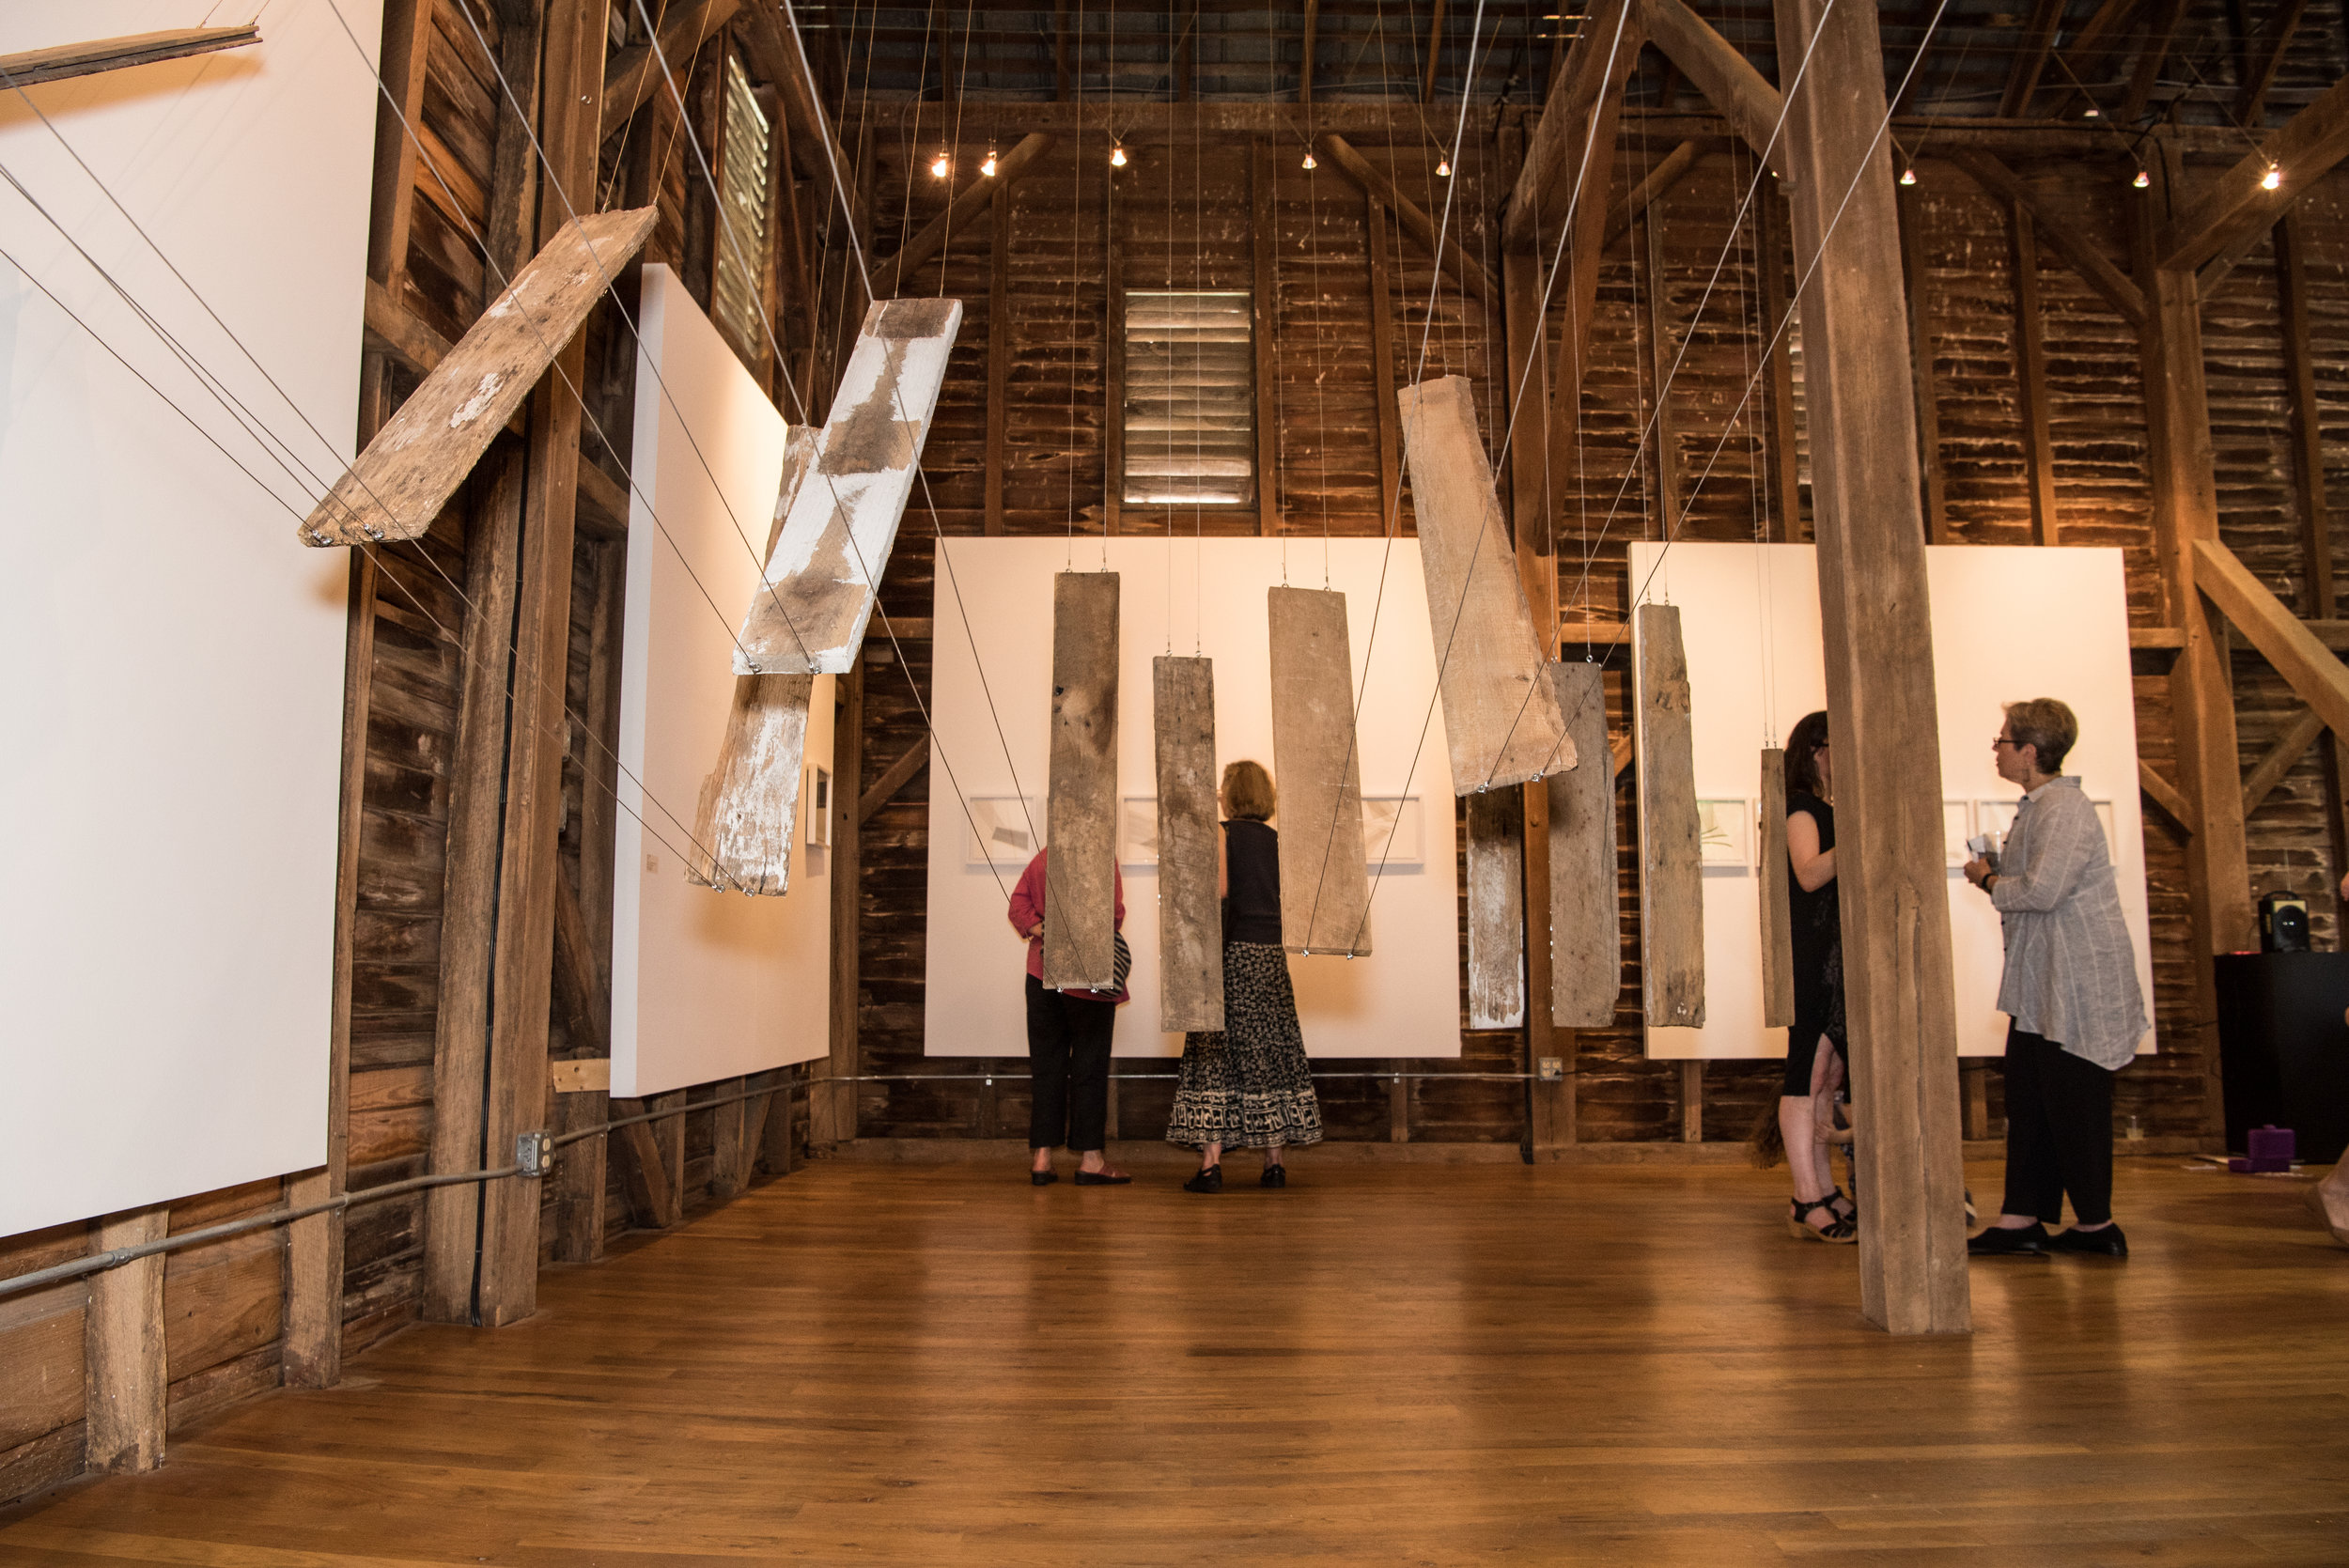 Sarah Hardesty's work interacts with the barn's finishes.